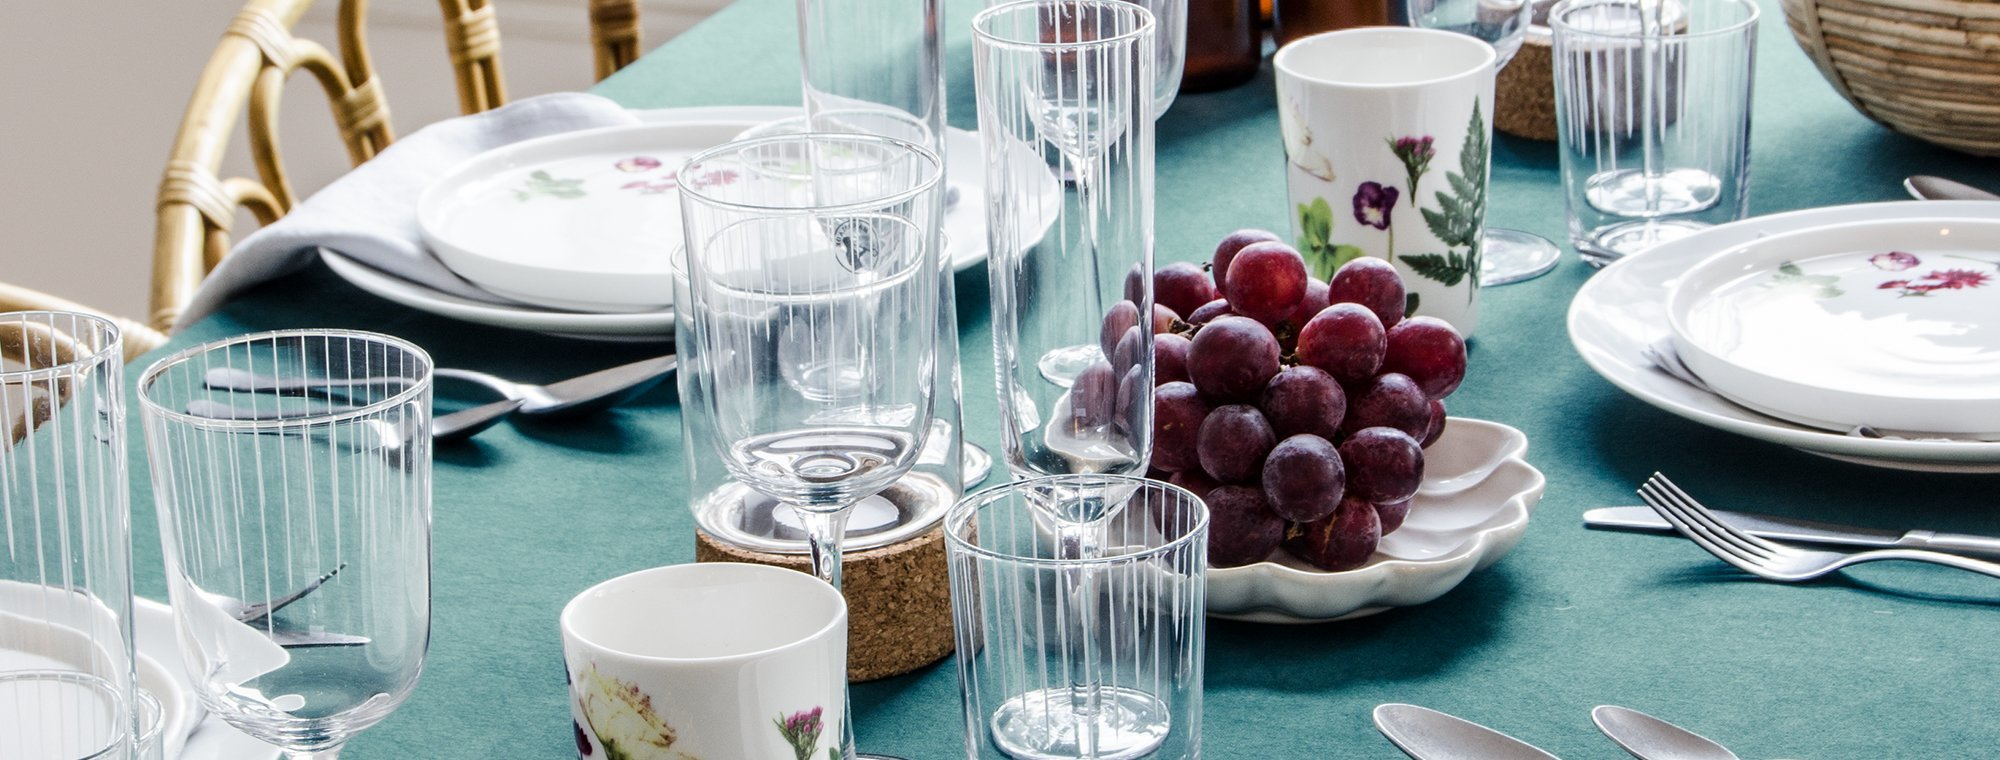 All New Modern Dining Table Accessories Online For Home